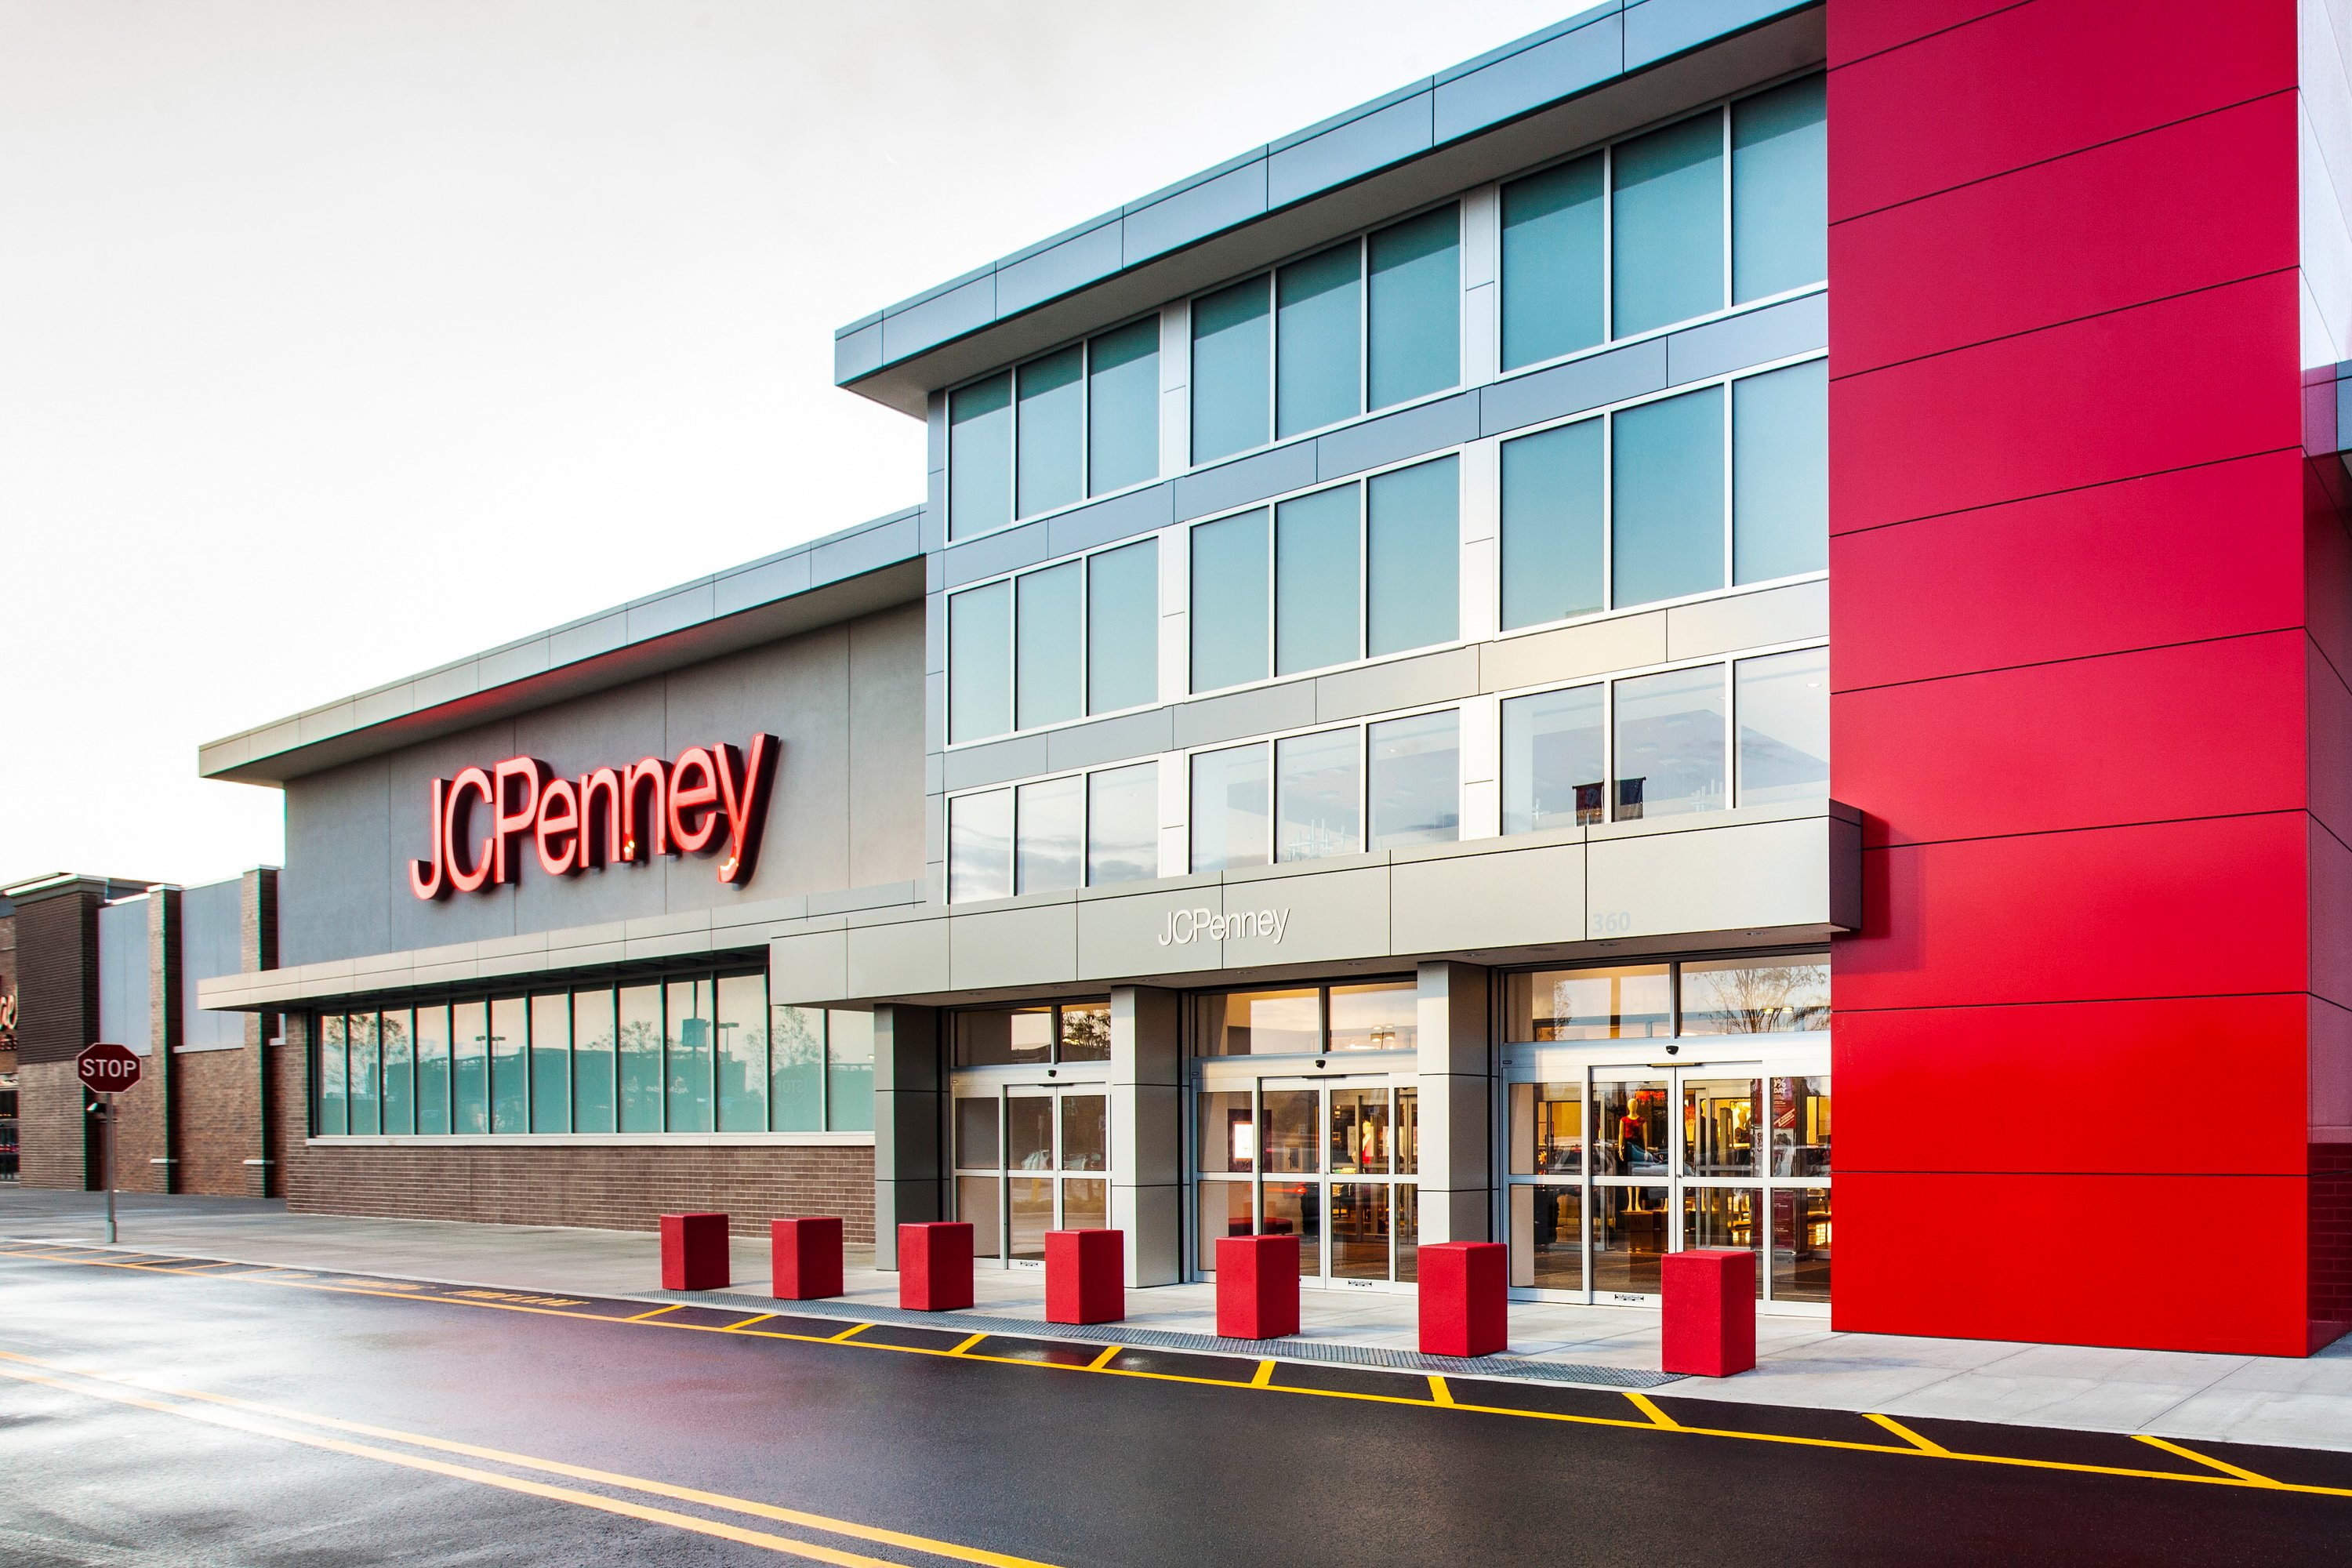 A top marketer for JC Penney and a rental service for Urban Outfitters: Marketer's Brief